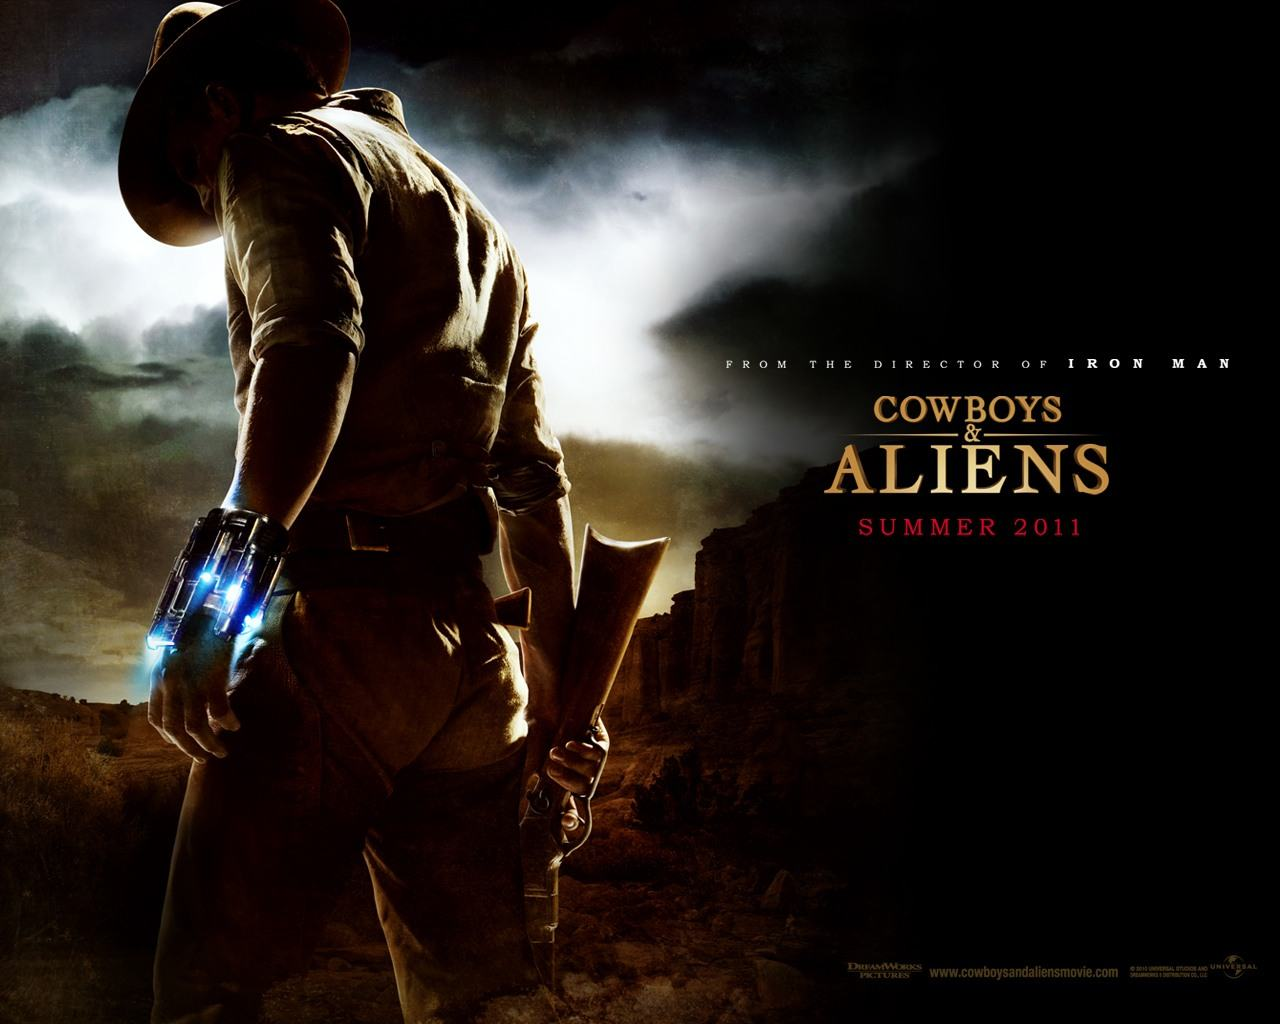 Cowboys And Aliens (2011) Movie Review | Isaactan.net ...